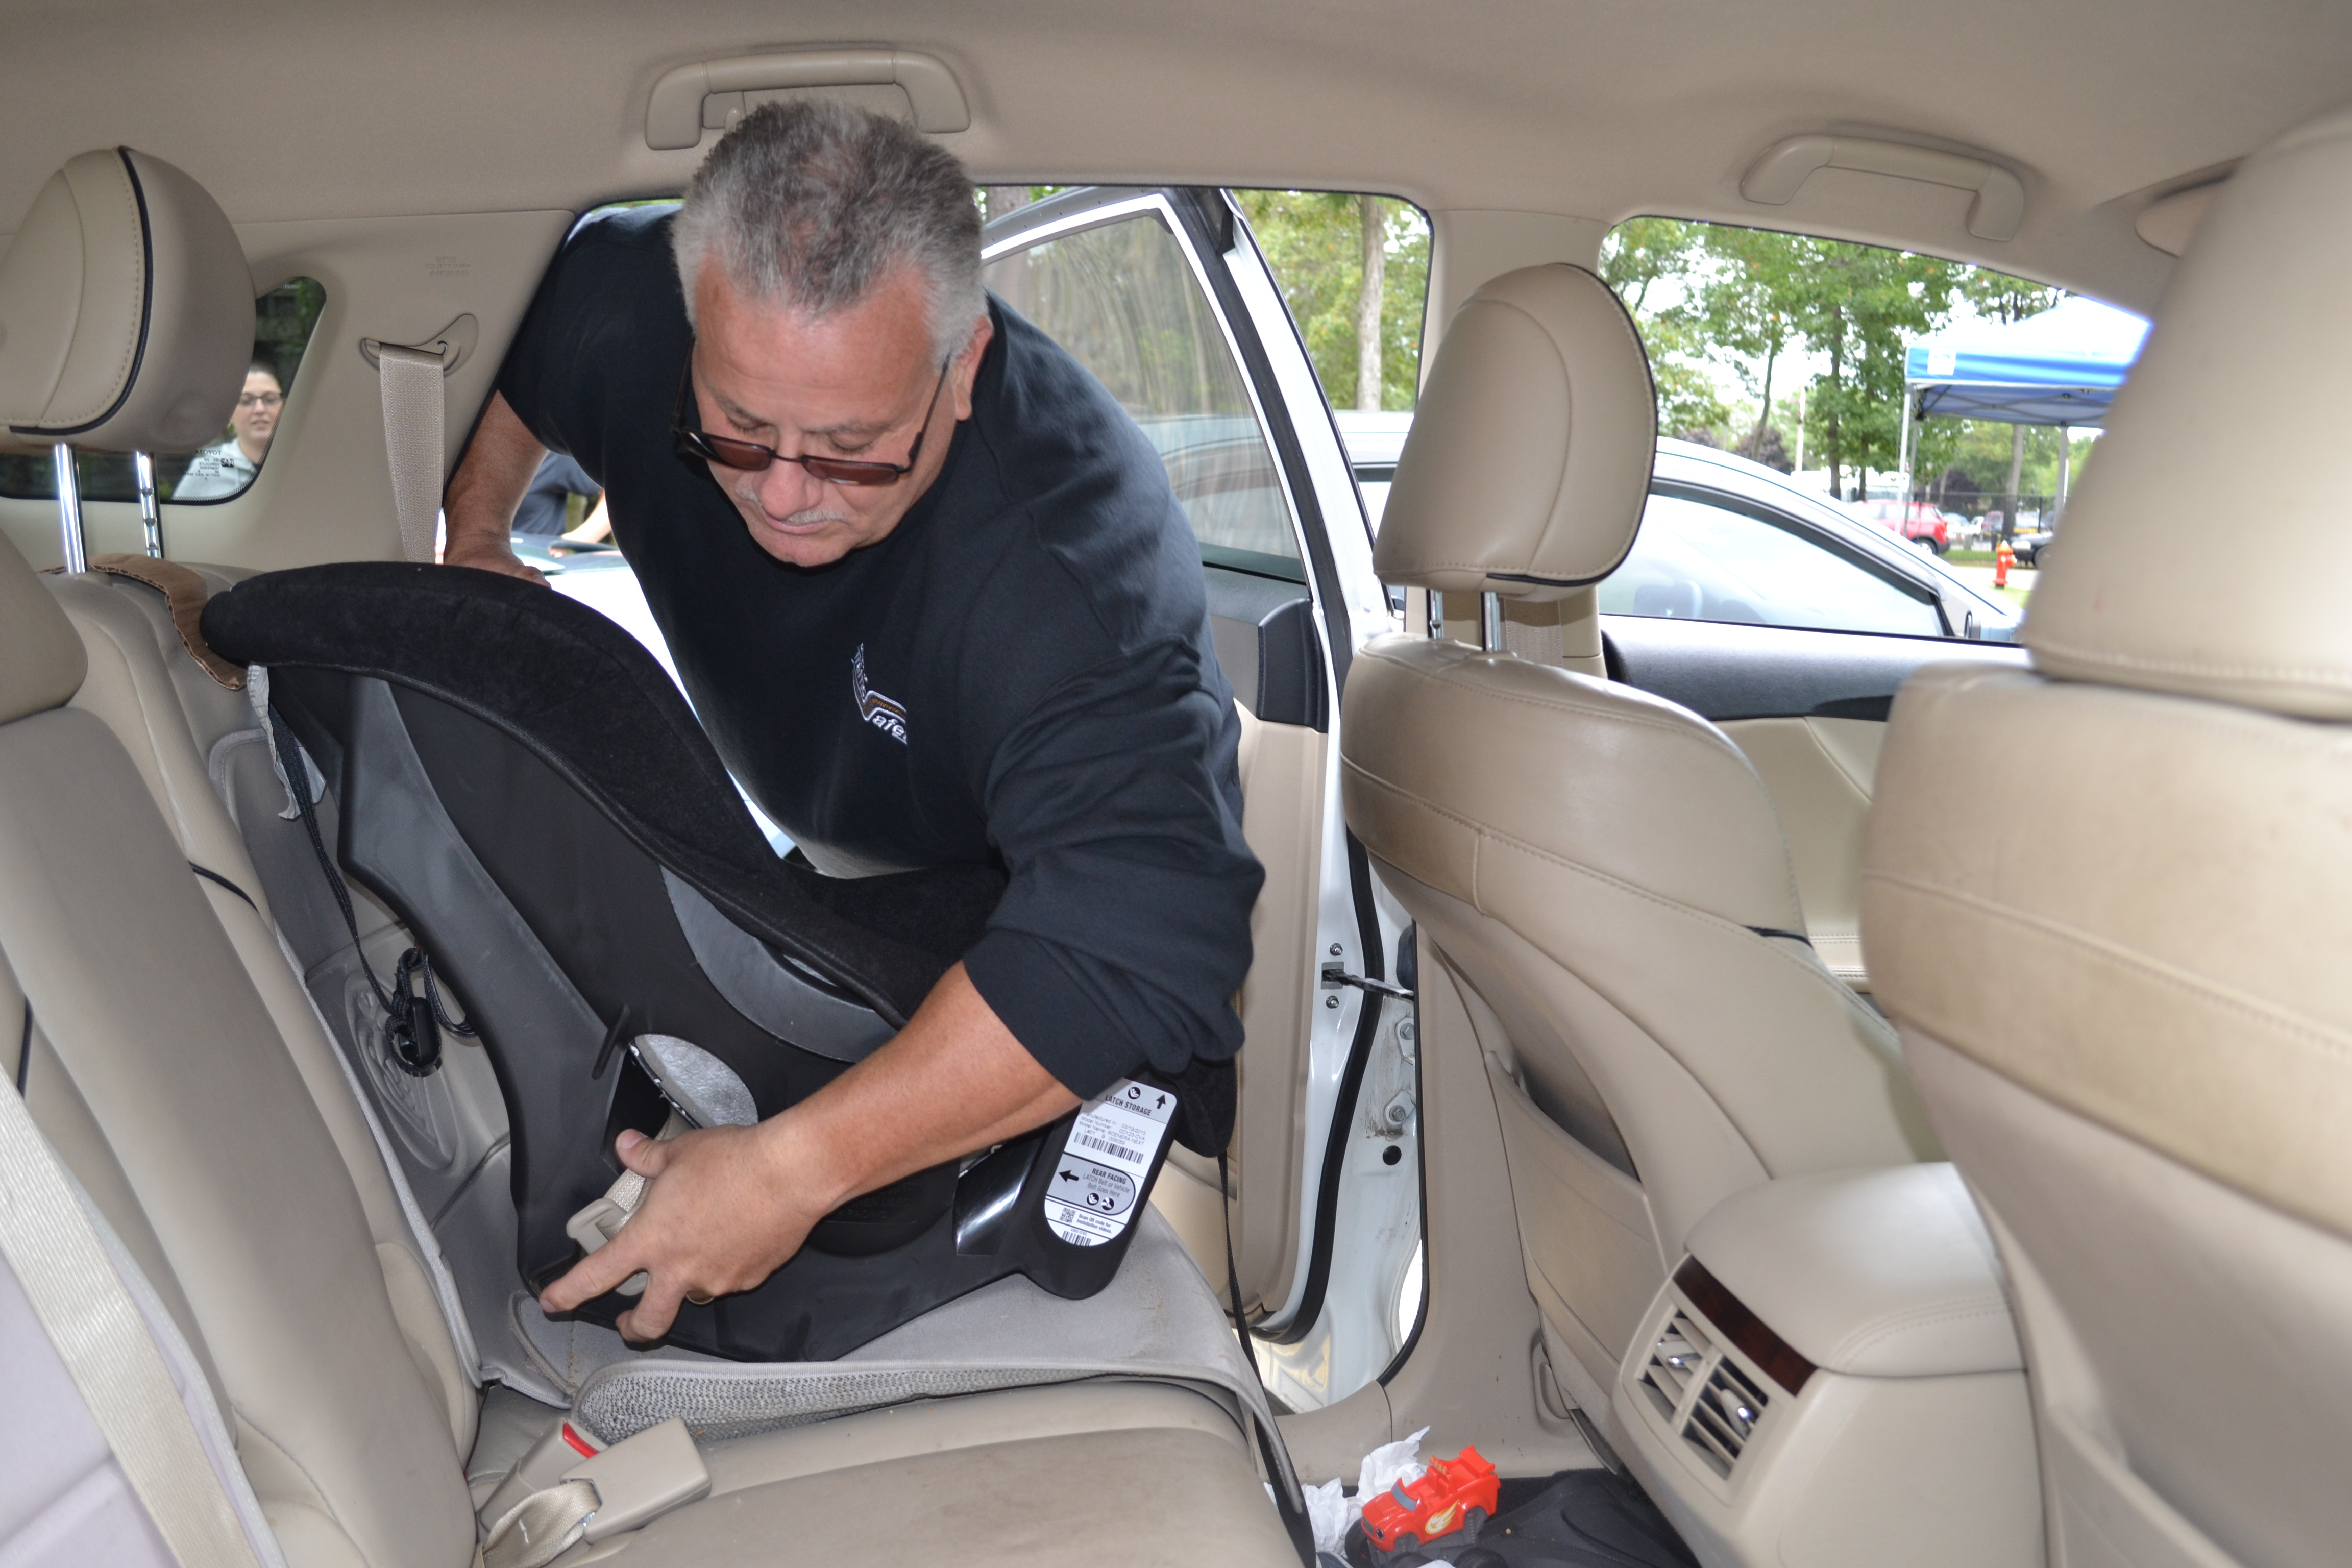 Child Safety Seat Check at Selden Fire Department